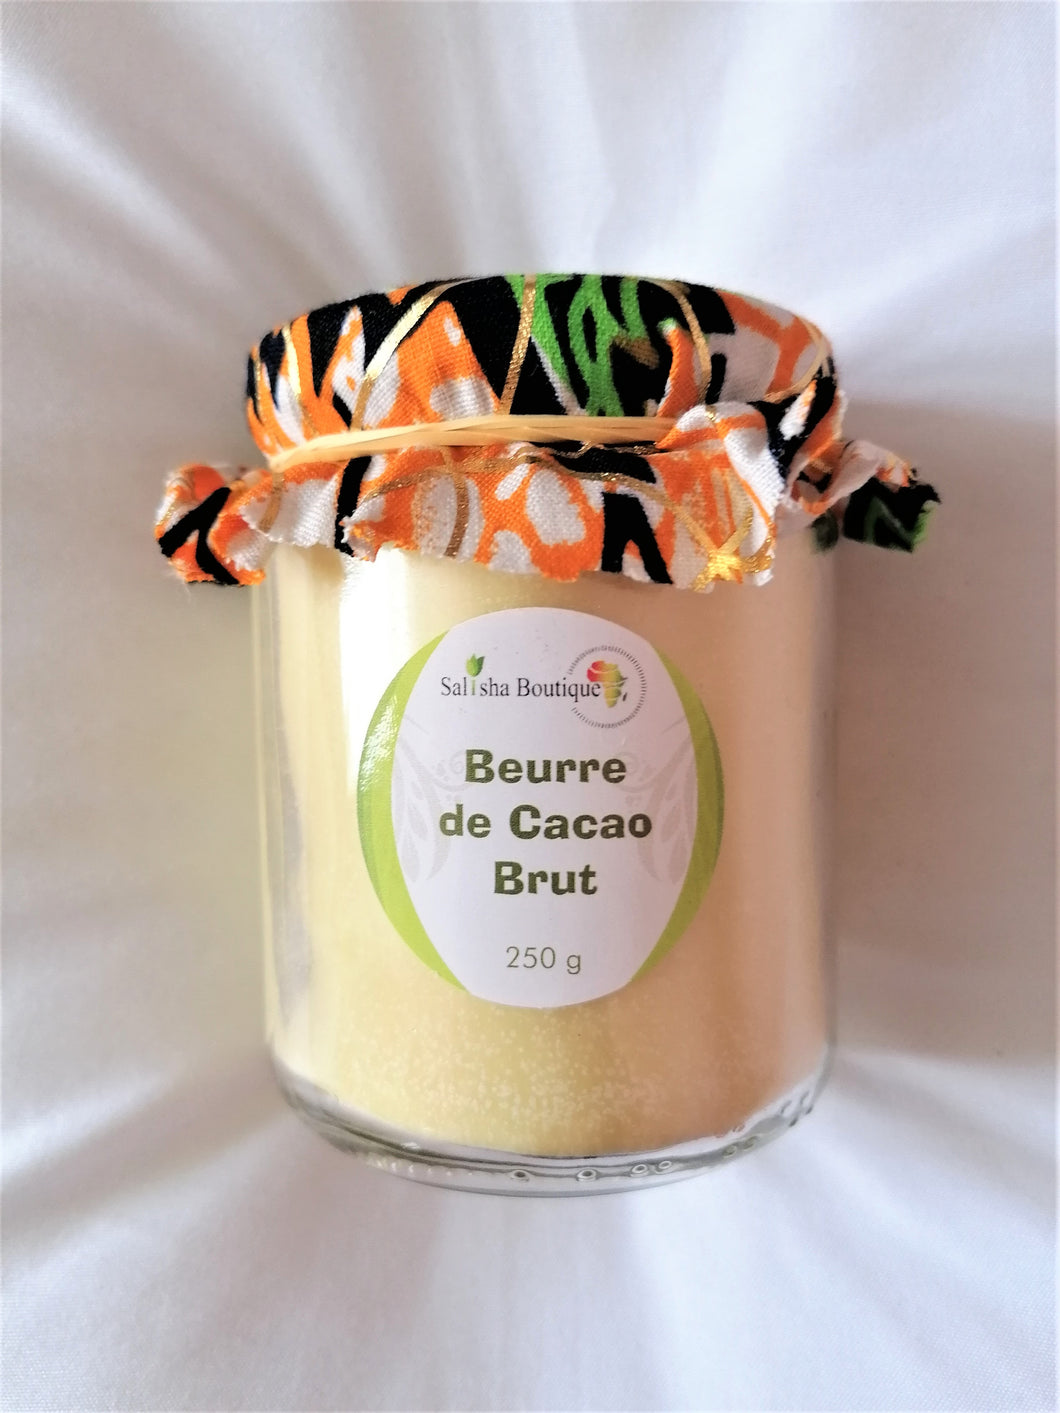 Beurre Cacao Salisha Boutique